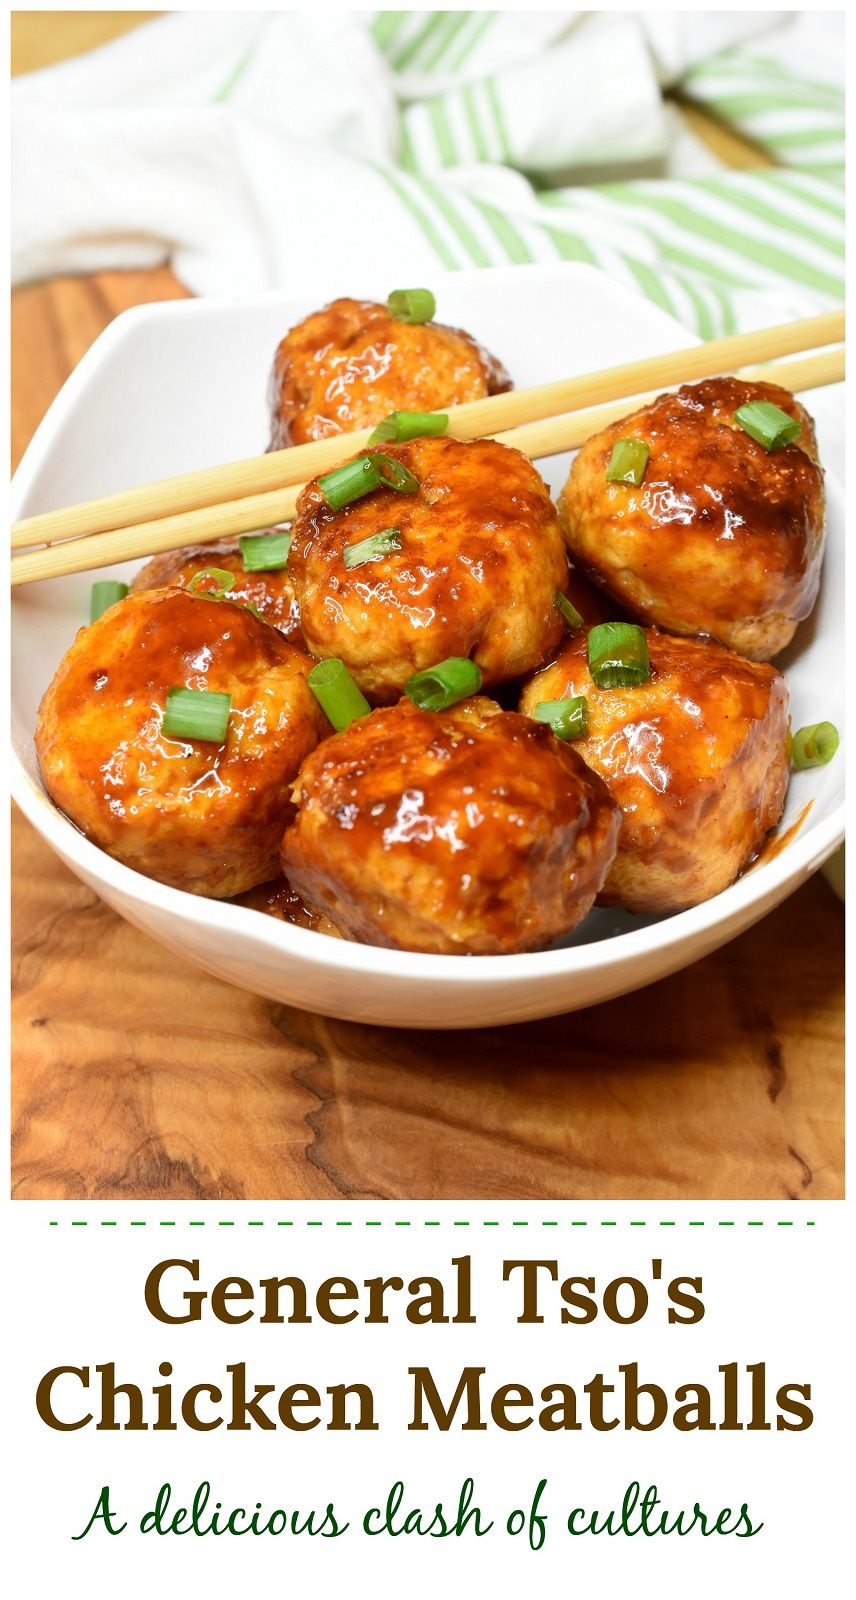 General Tso's Chicken Meatballs one of my favorites!